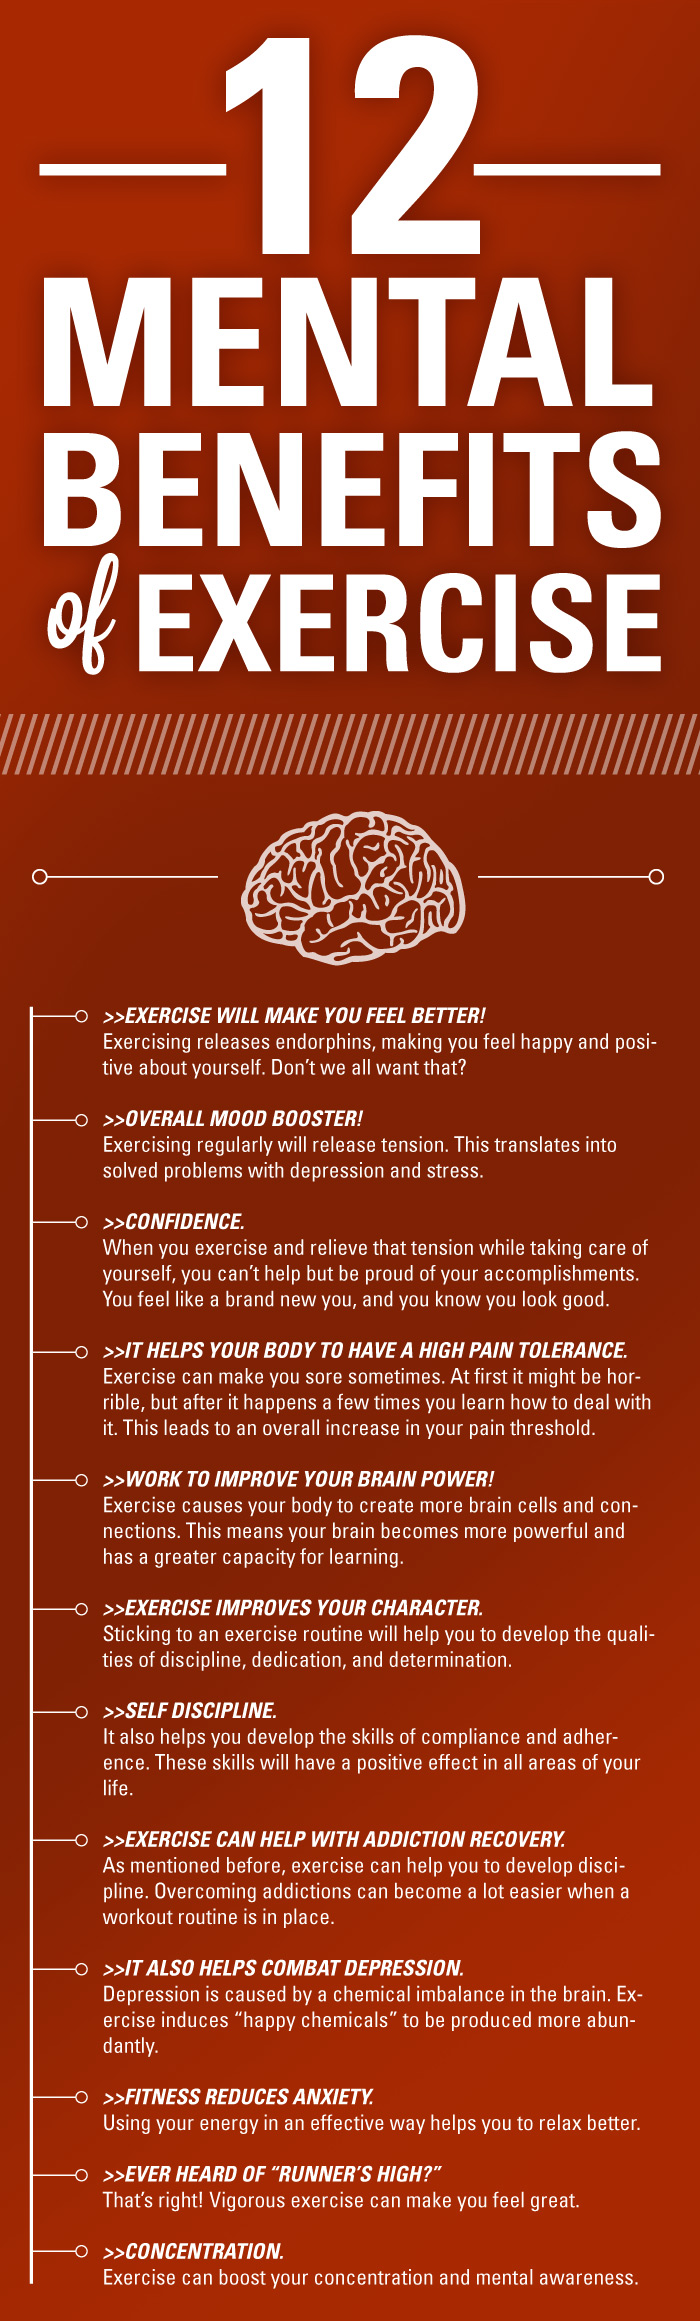 12 Mental Benefits of Exercise #Infographic